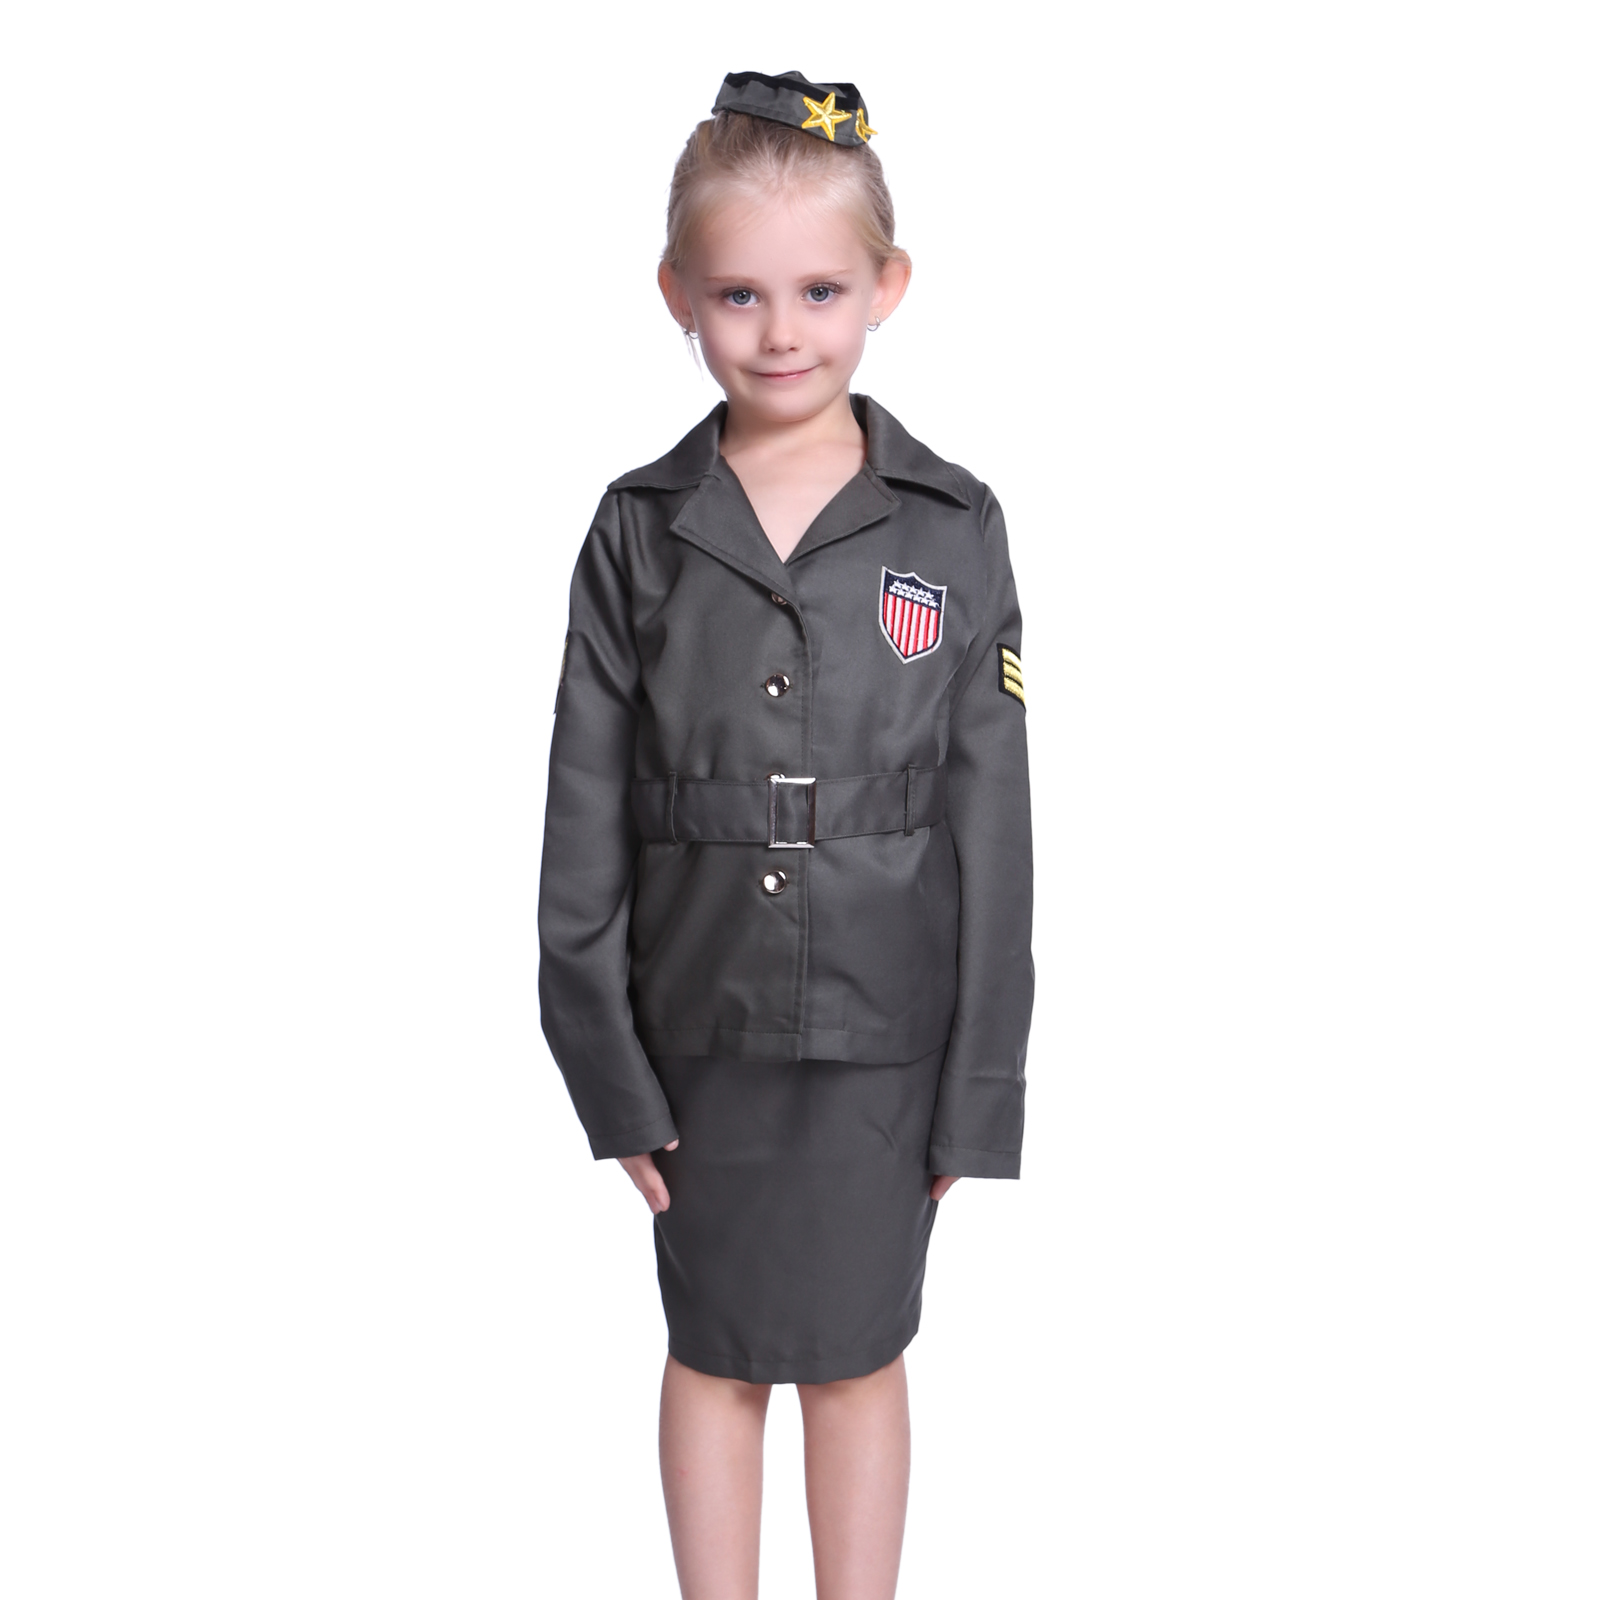 Kids Military Clothing, Uniforms, & Items Kids Military Uniforms Kids Military Uniforms Browse our selection below of kids military uniforms including great package deals on kids ACUs, kids BDUs, and kids DCUs, including Woodland camo and urban city camo.